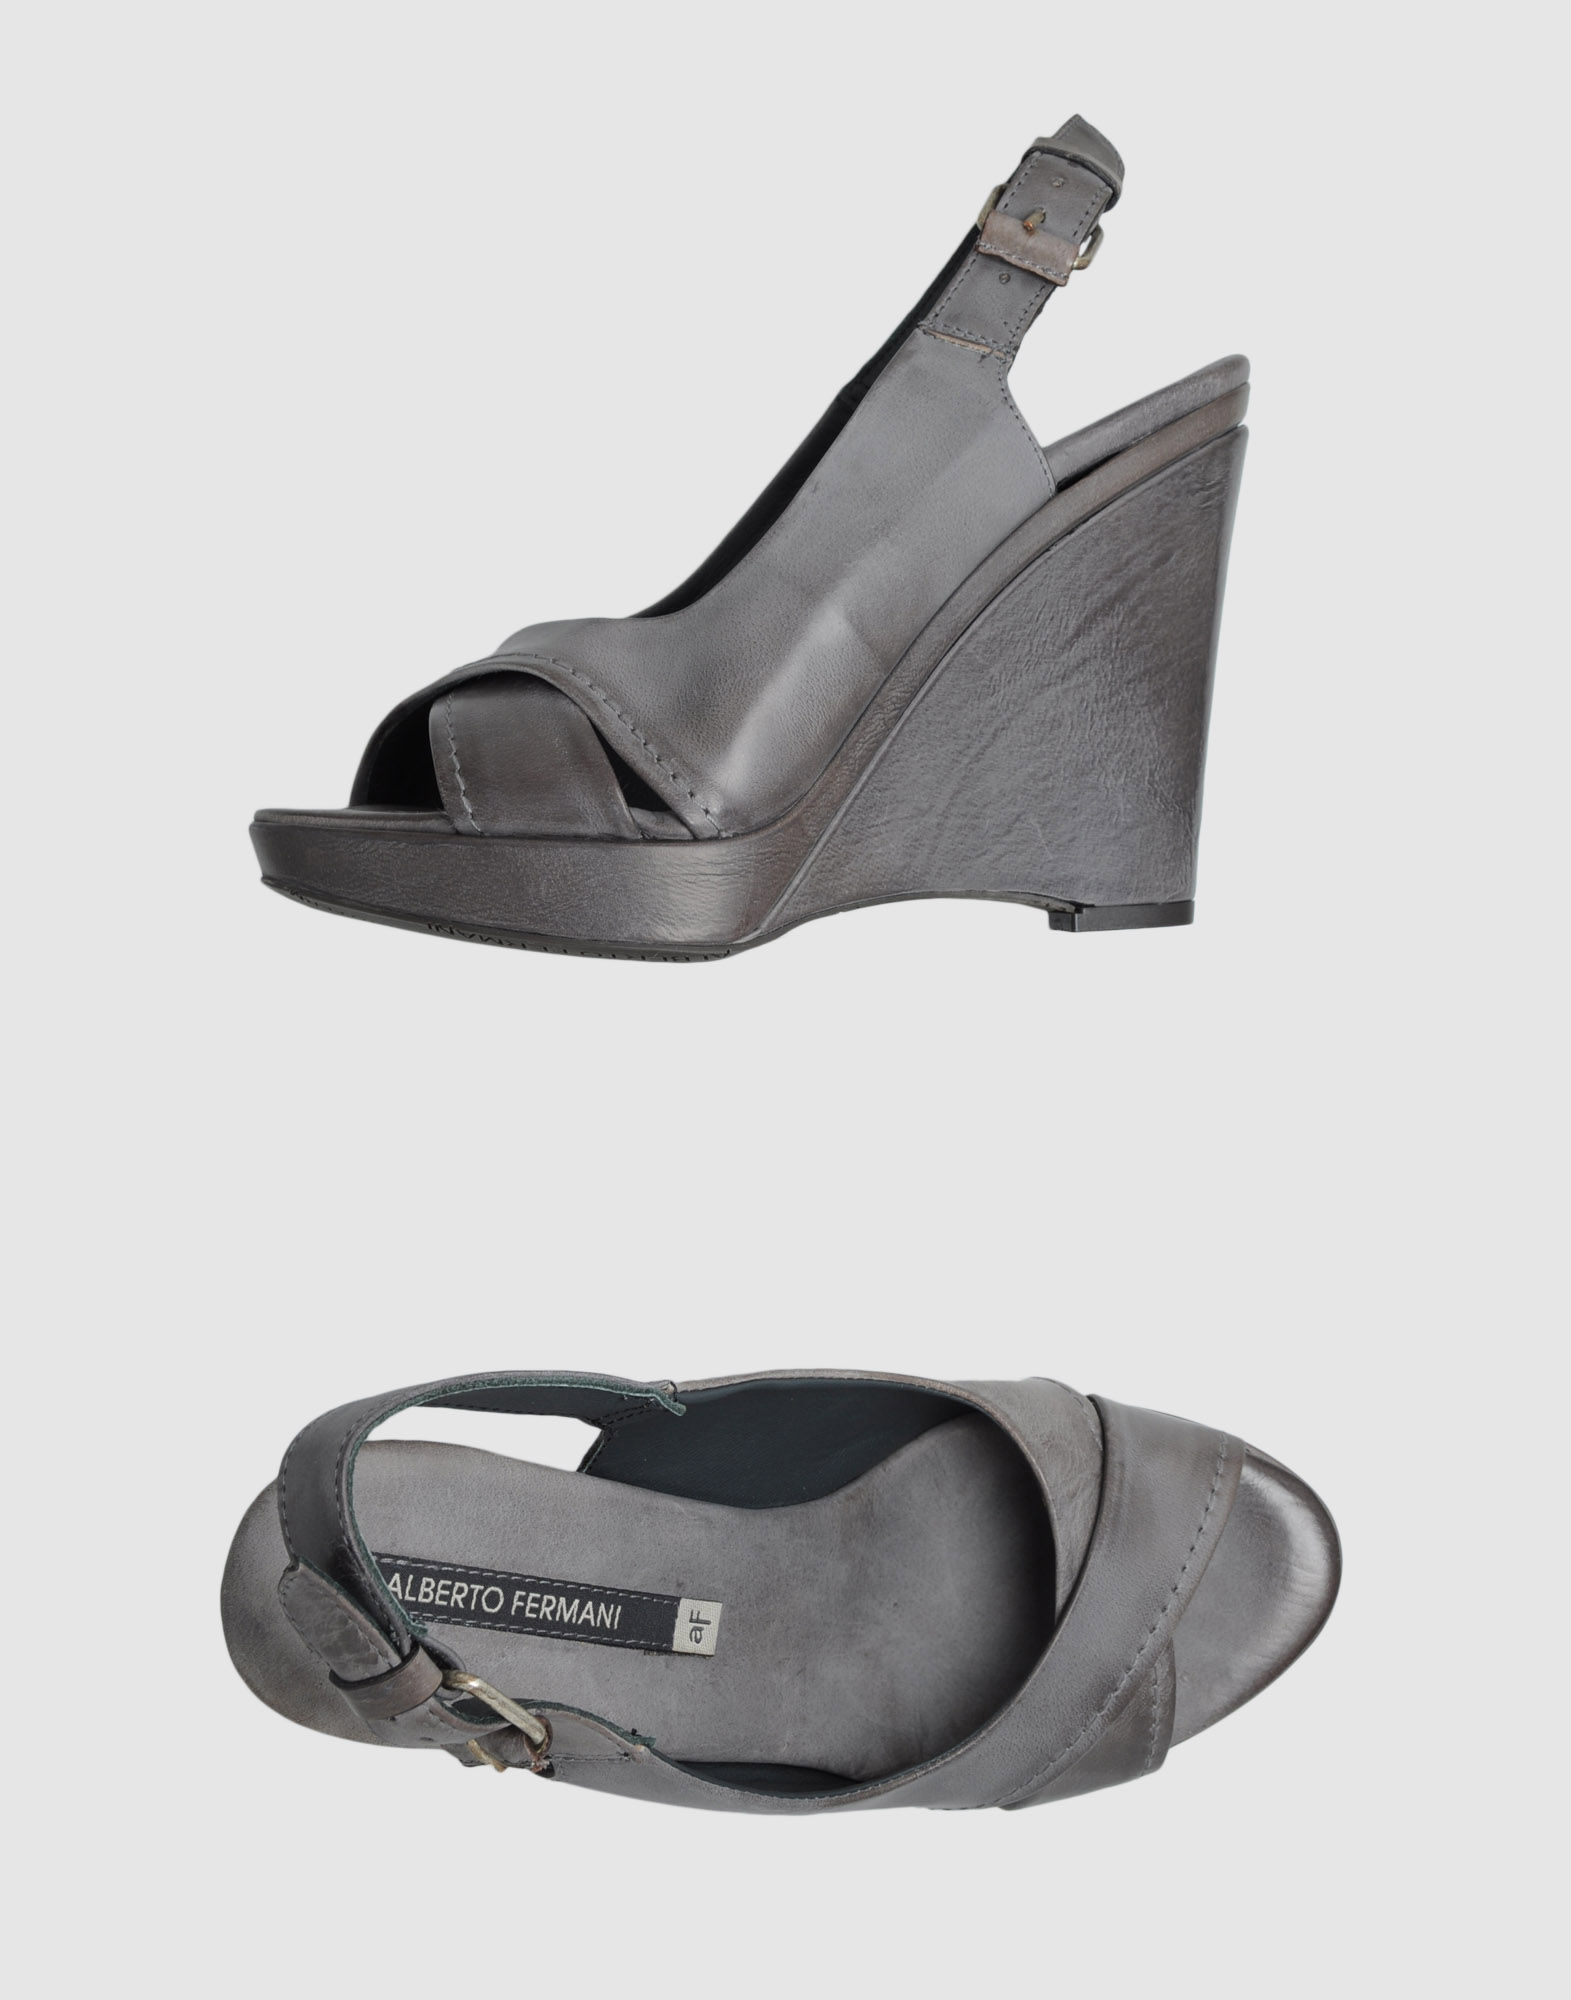 alberto fermani wedge sandals in gray grey lyst